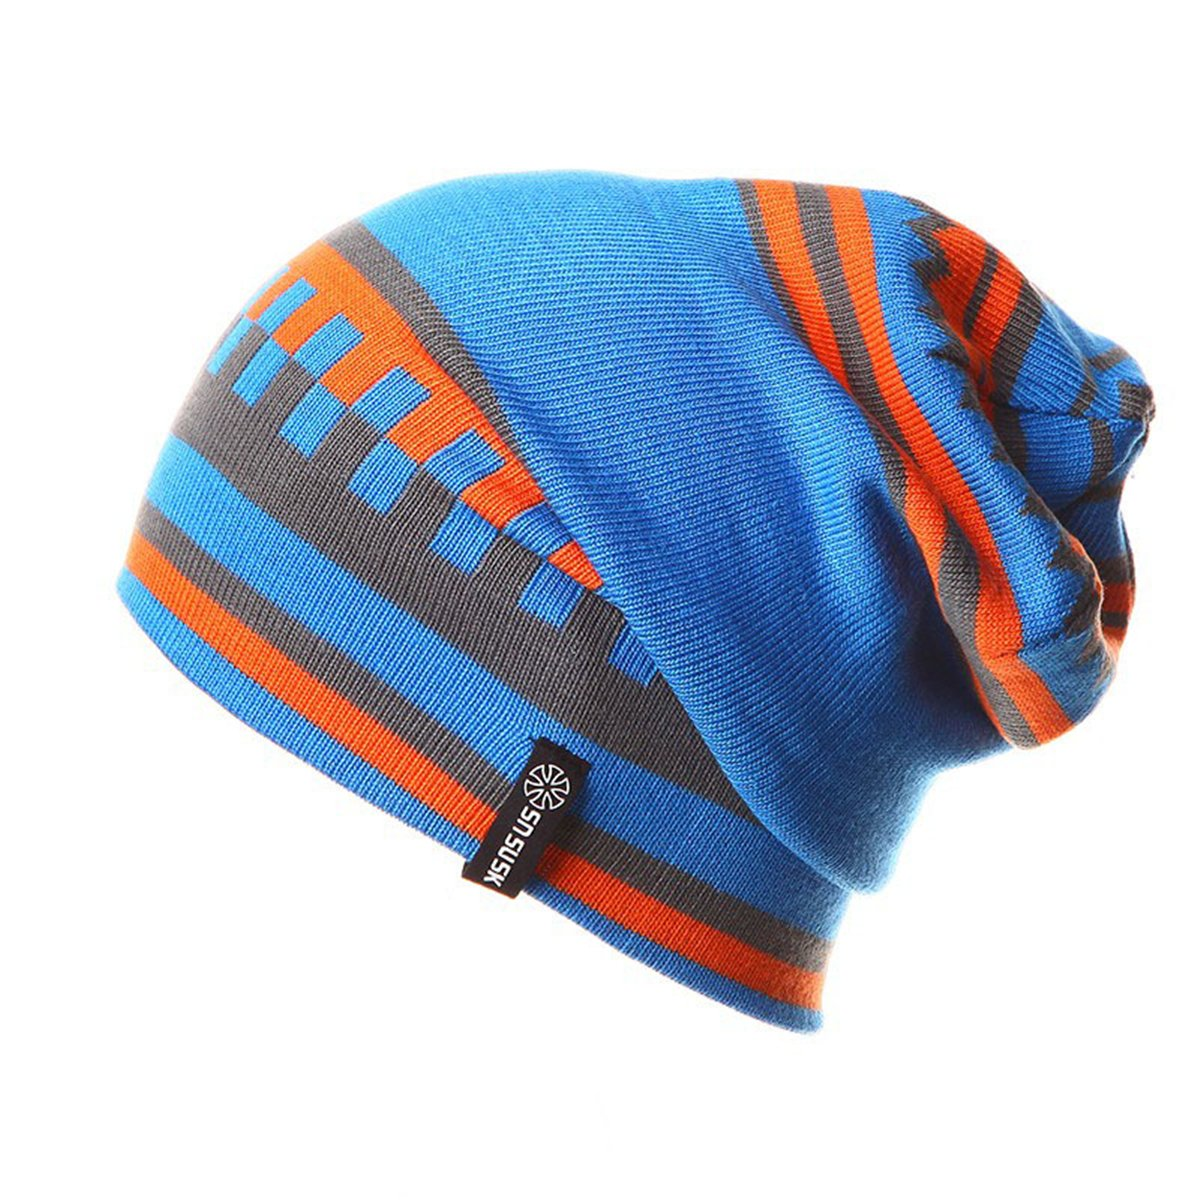 Apparelsales Mens Winter Knitting Ski Hat Snow Cap Beanies Headwear Lindaeshop